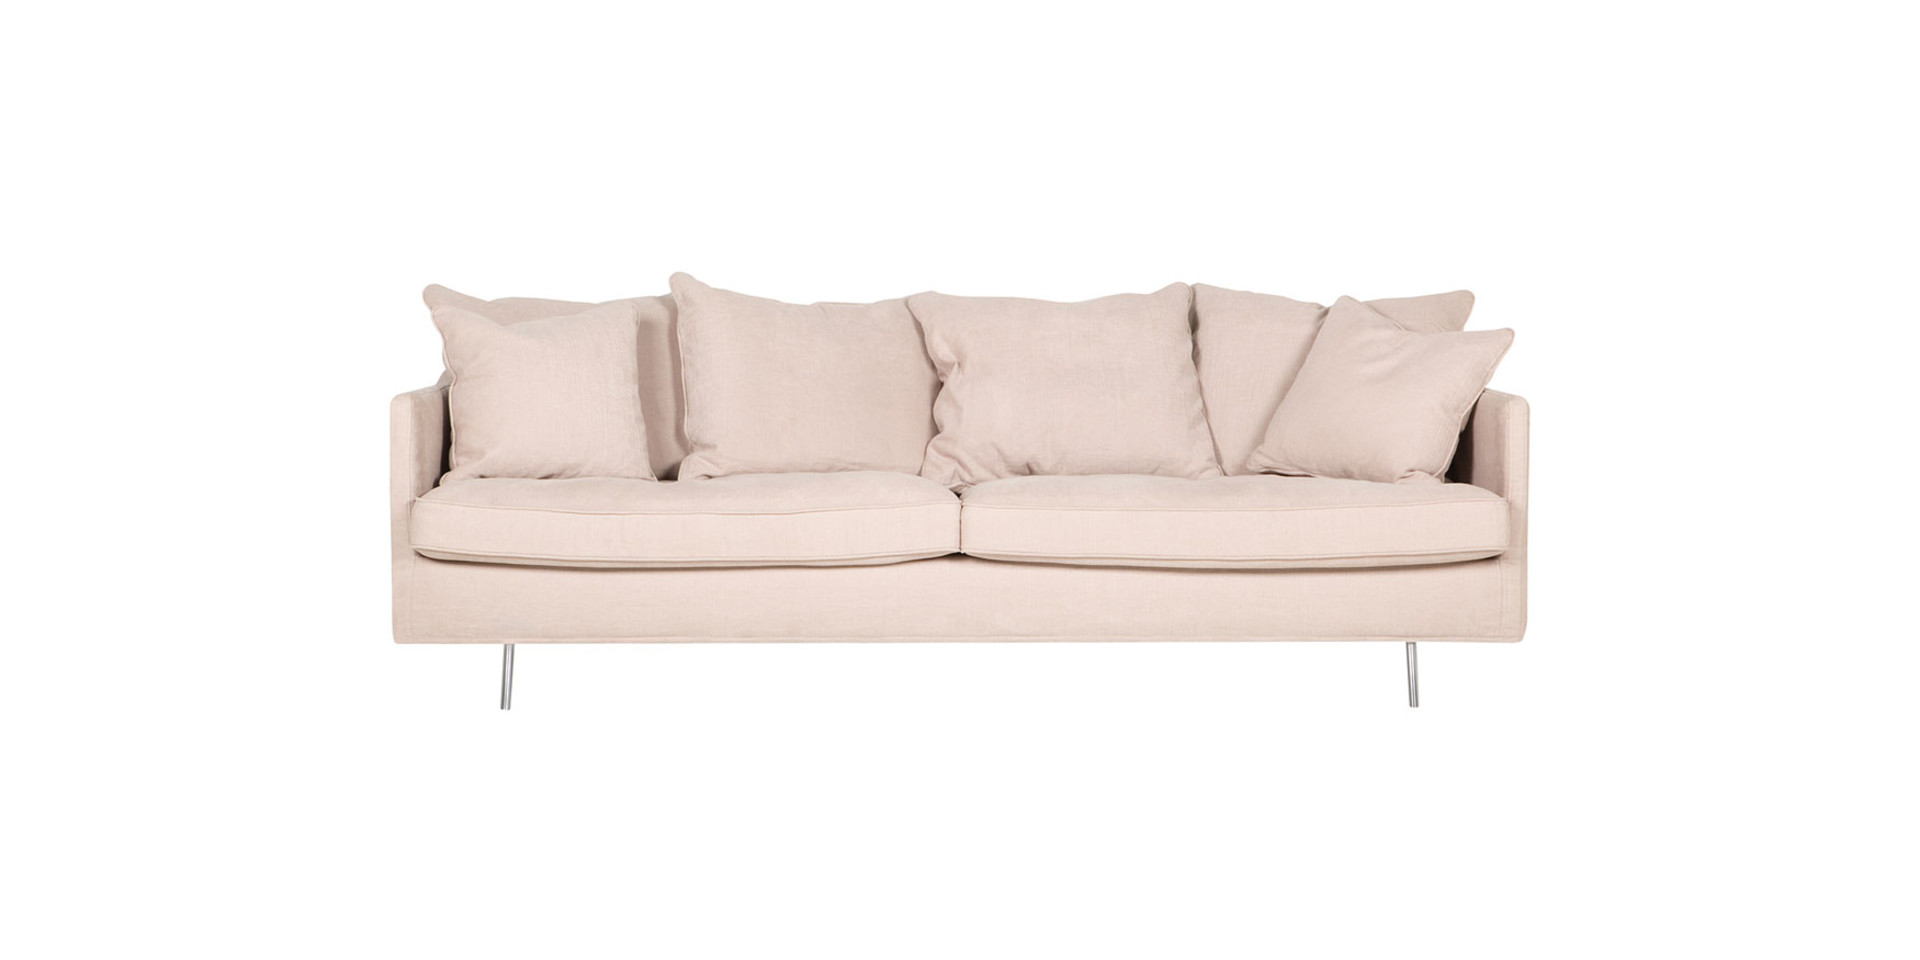 sits-julia-canape-3seater_caleido2990_powder_pink_1